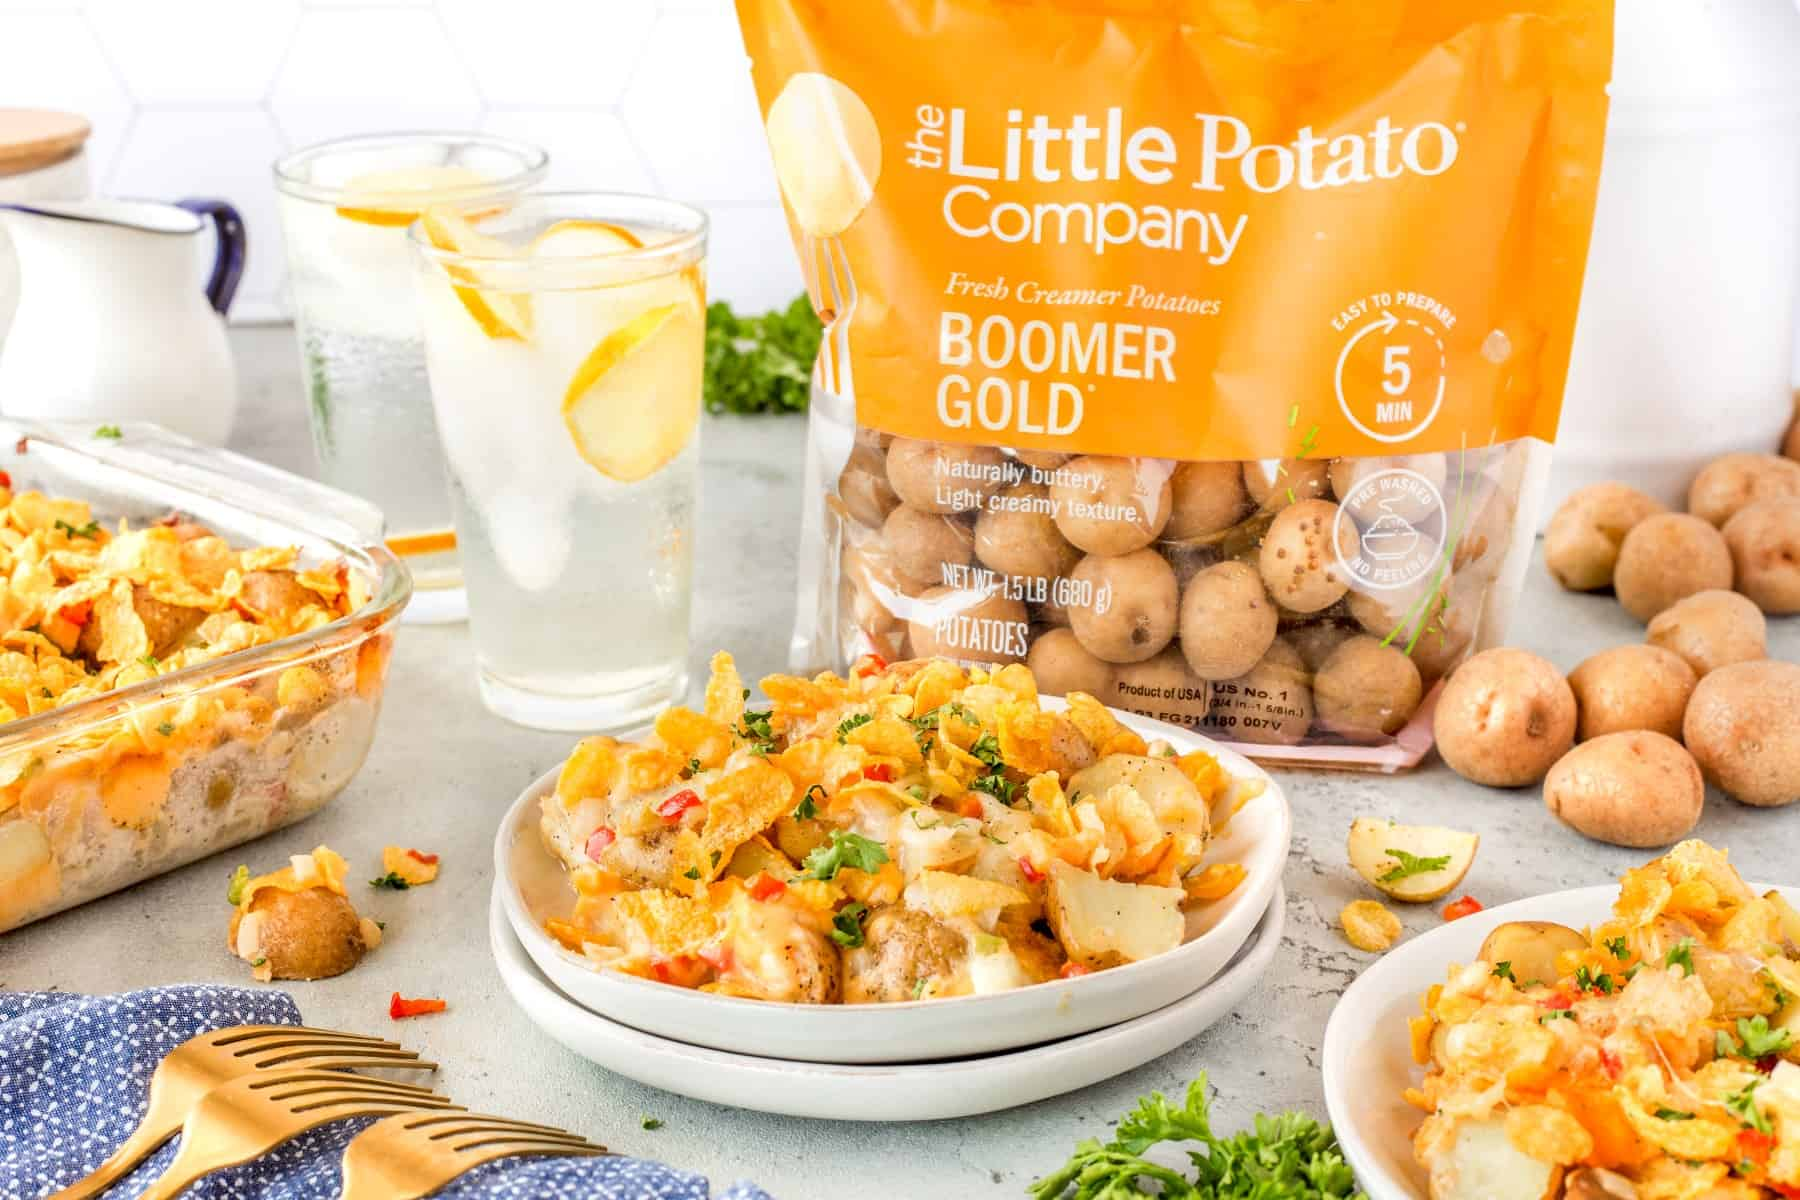 Horizontal shot of Cottage potatoes with a bag of Little Potato Company Potatoes.